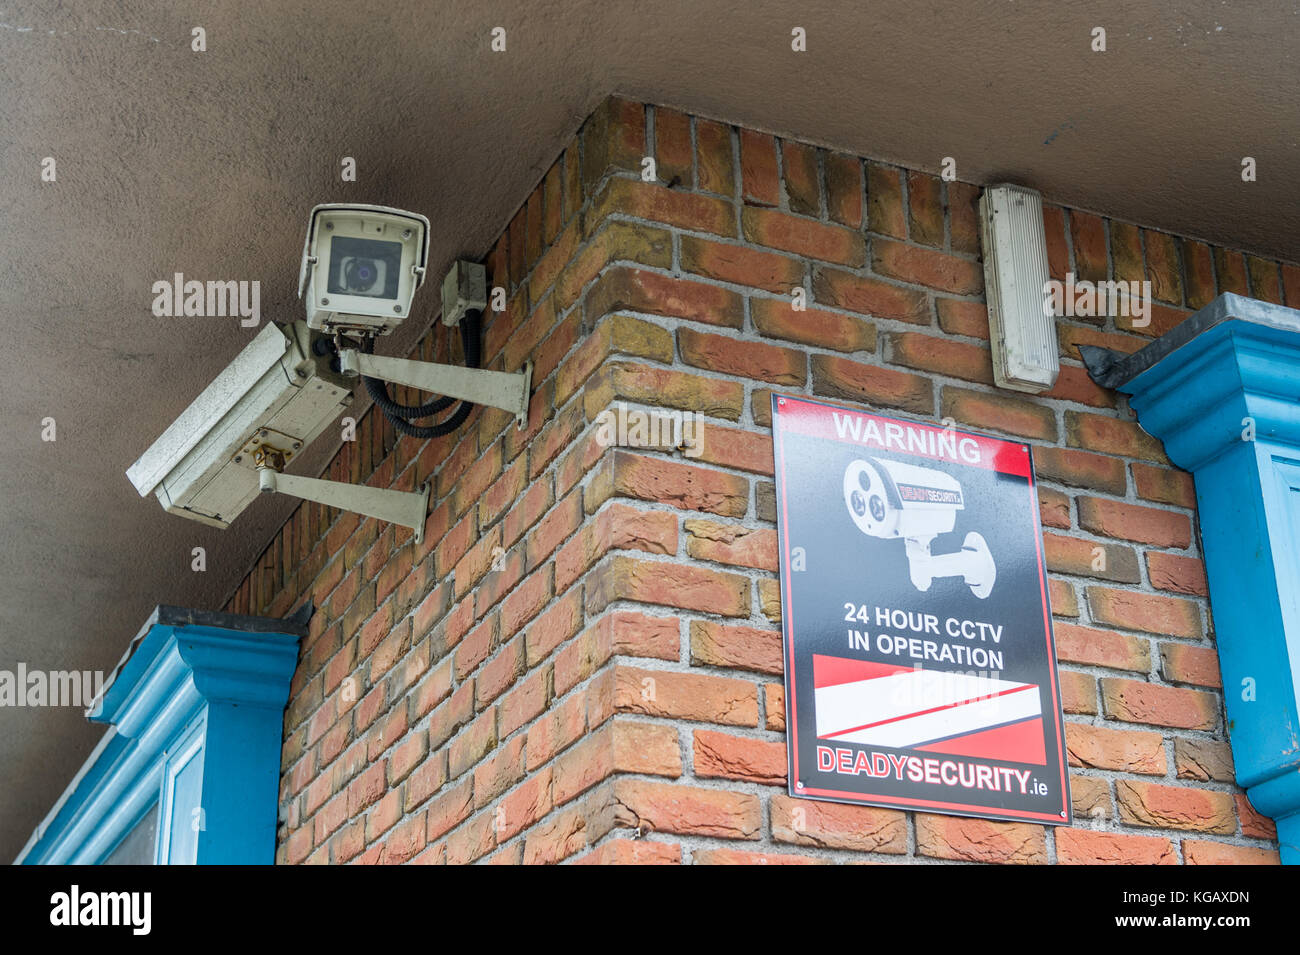 Two CCTV cameras on a brick wall facing in the opposite directions. - Stock Image